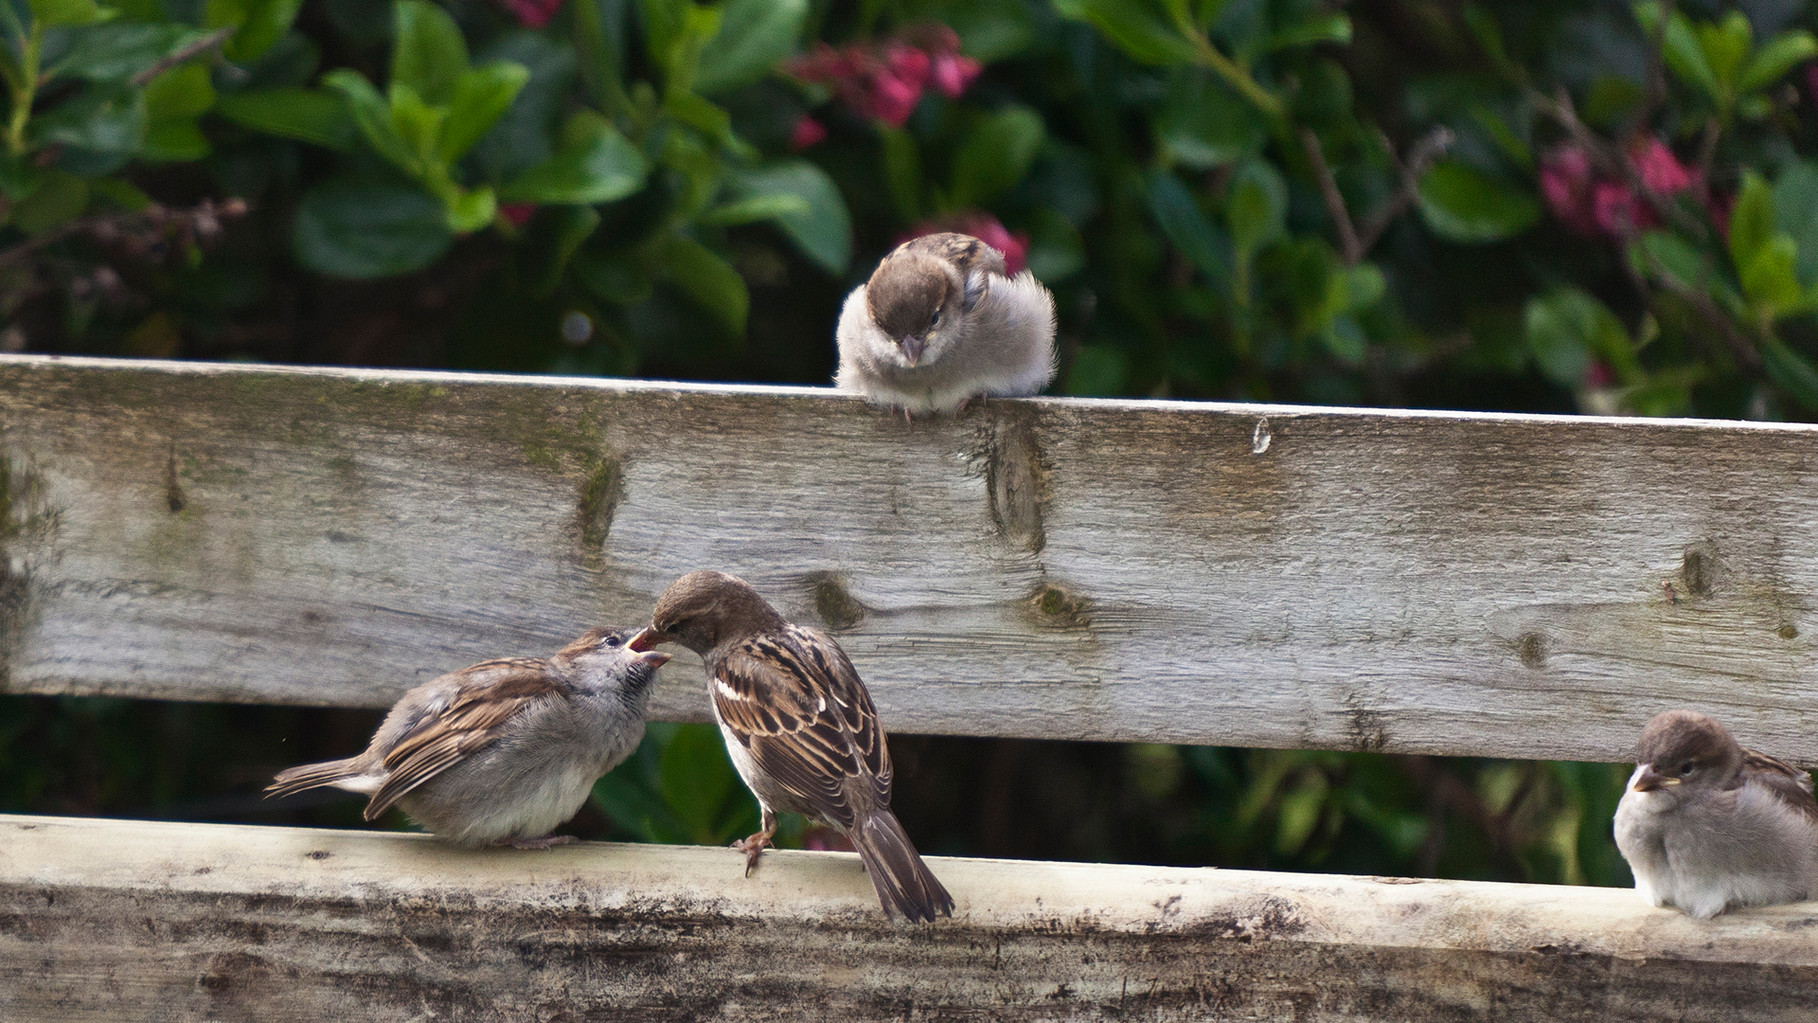 Feeding time - sparrows in Keel, Achill Island, County Mayo